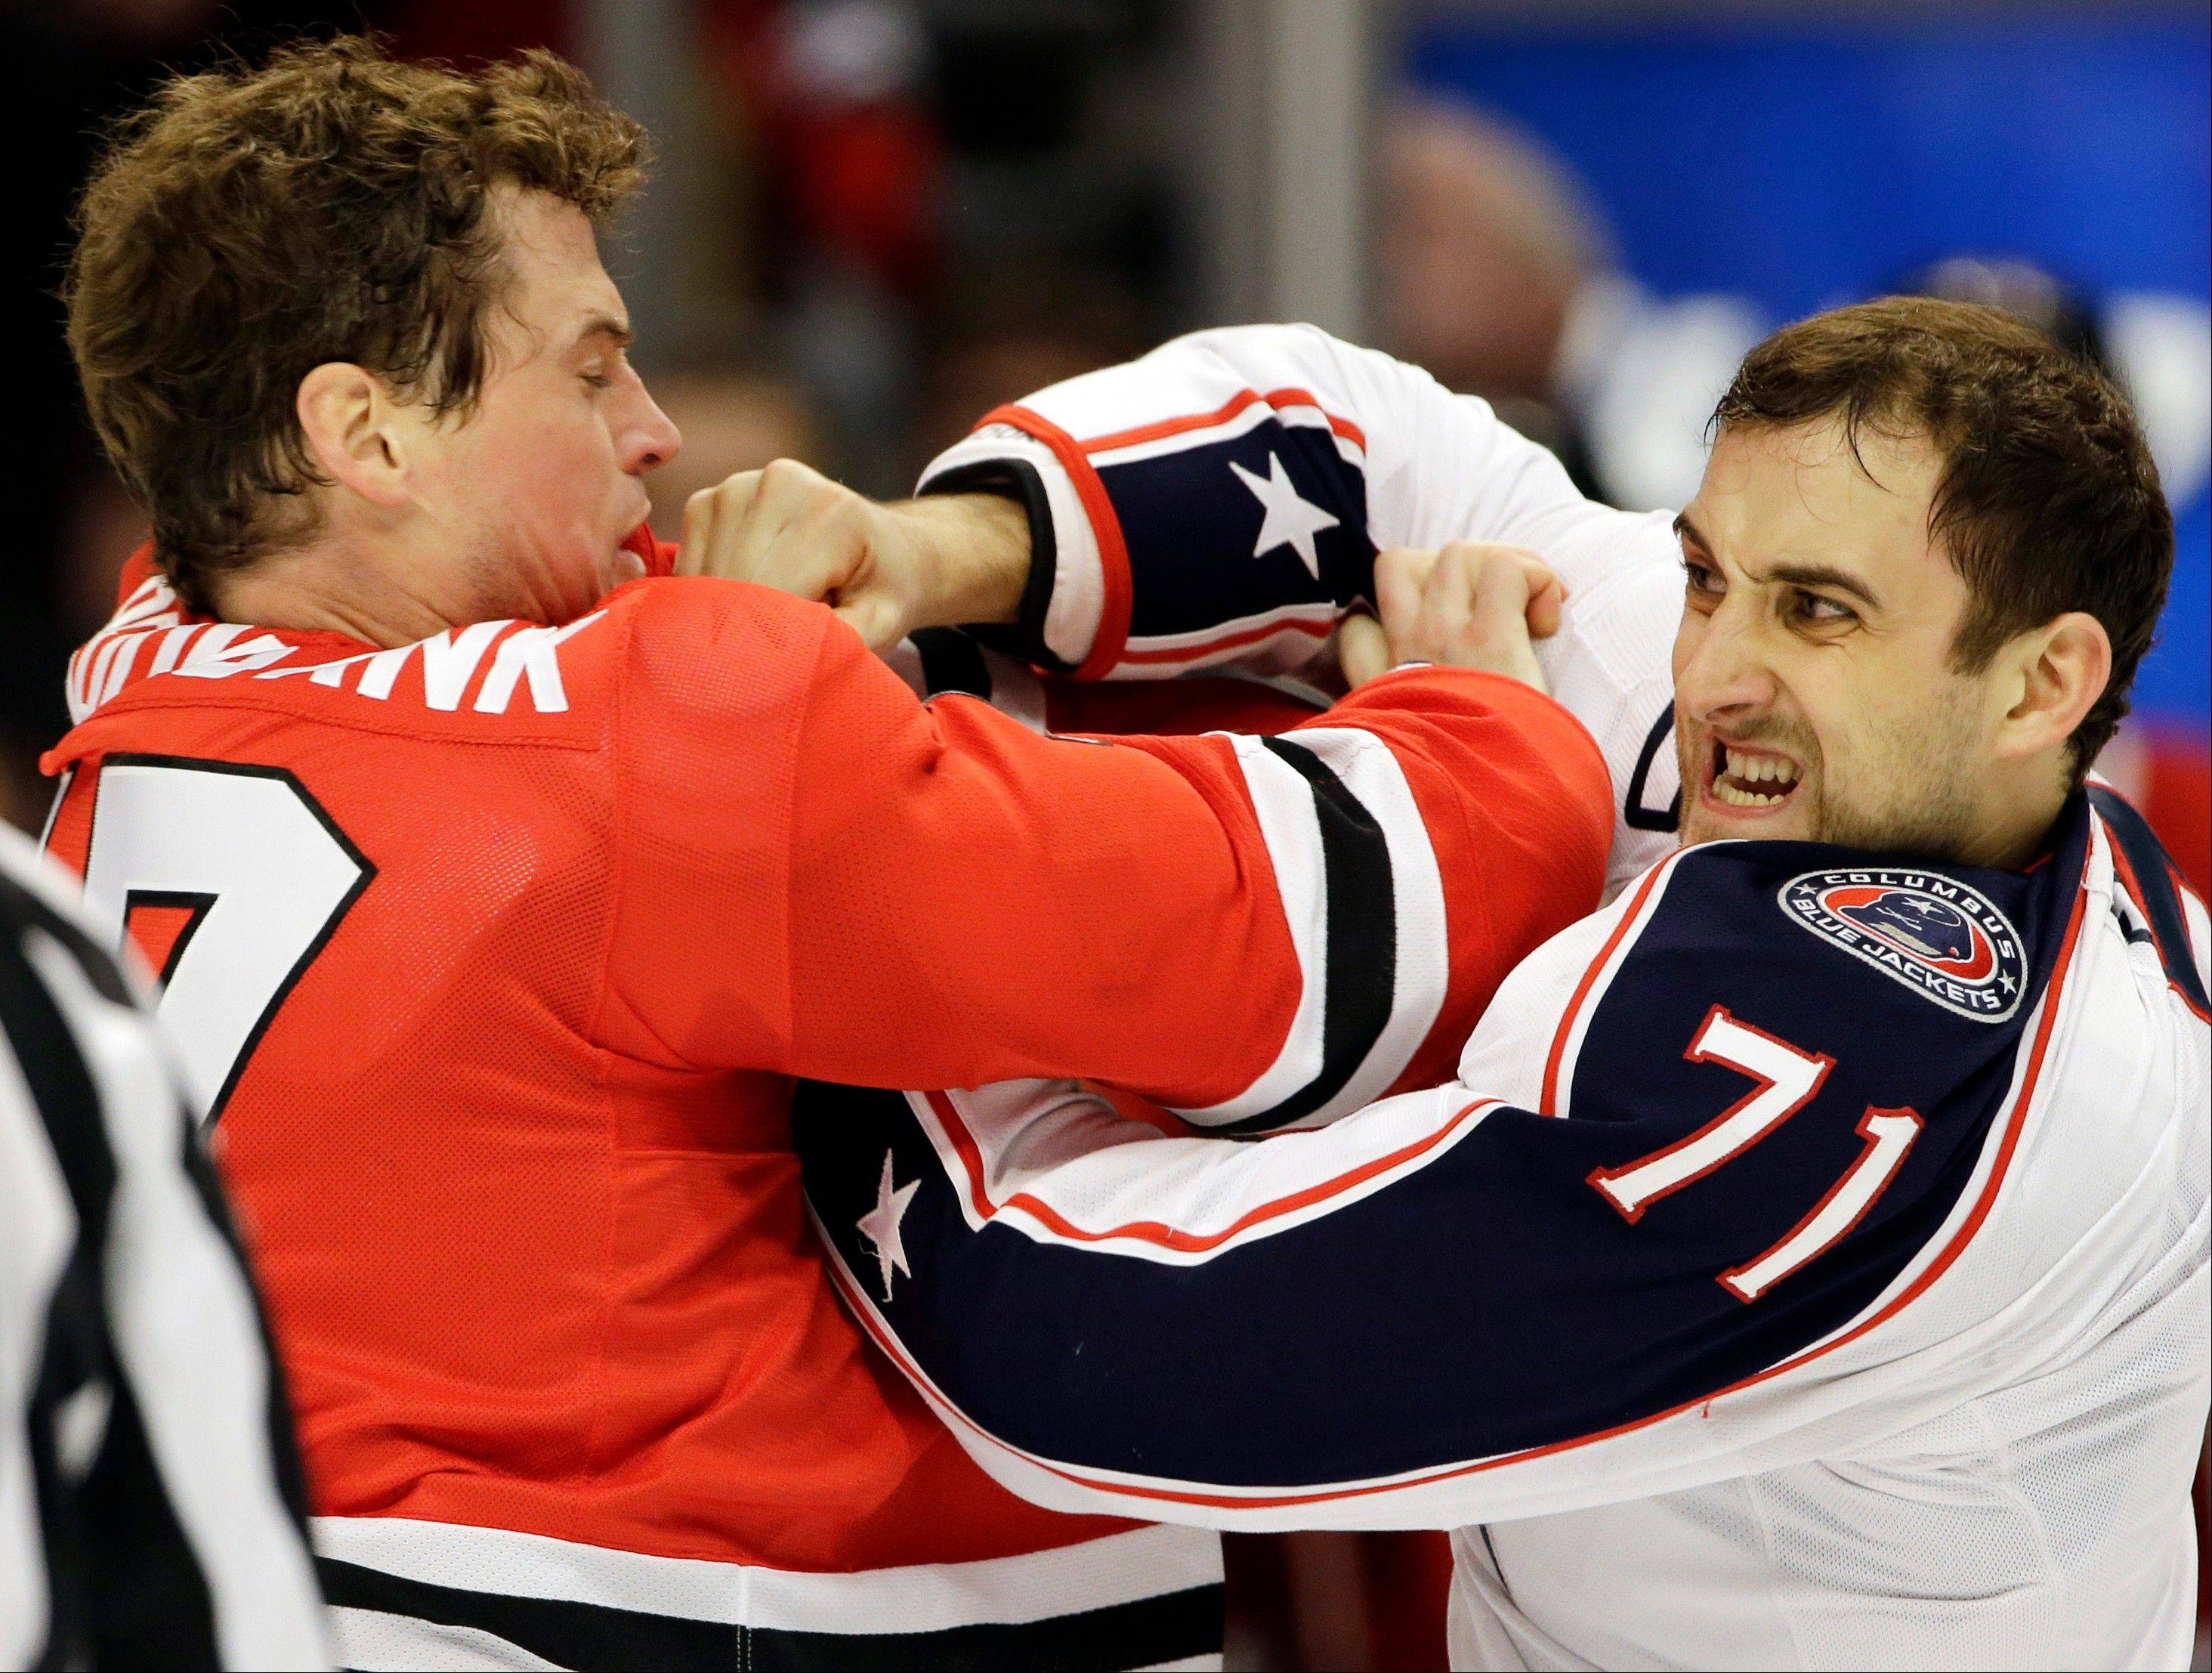 Columbus Blue Jackets' Nick Foligno, right, fights with Chicago Blackhawks' Sheldon Brookbank during the first period.